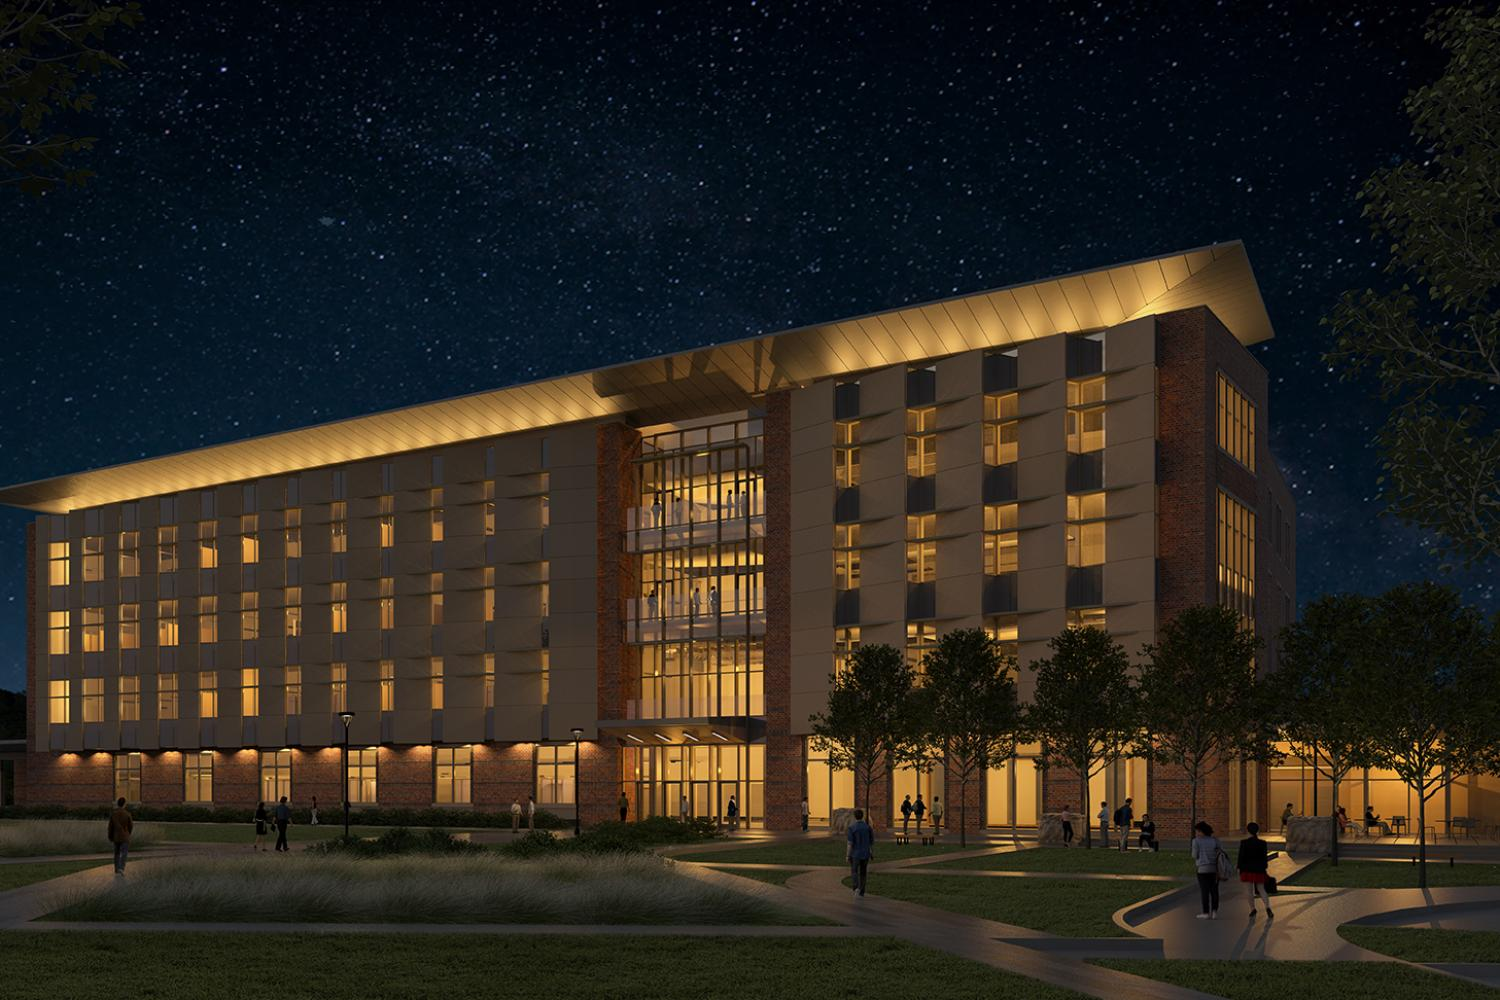 A rendering of the new aerospace building.